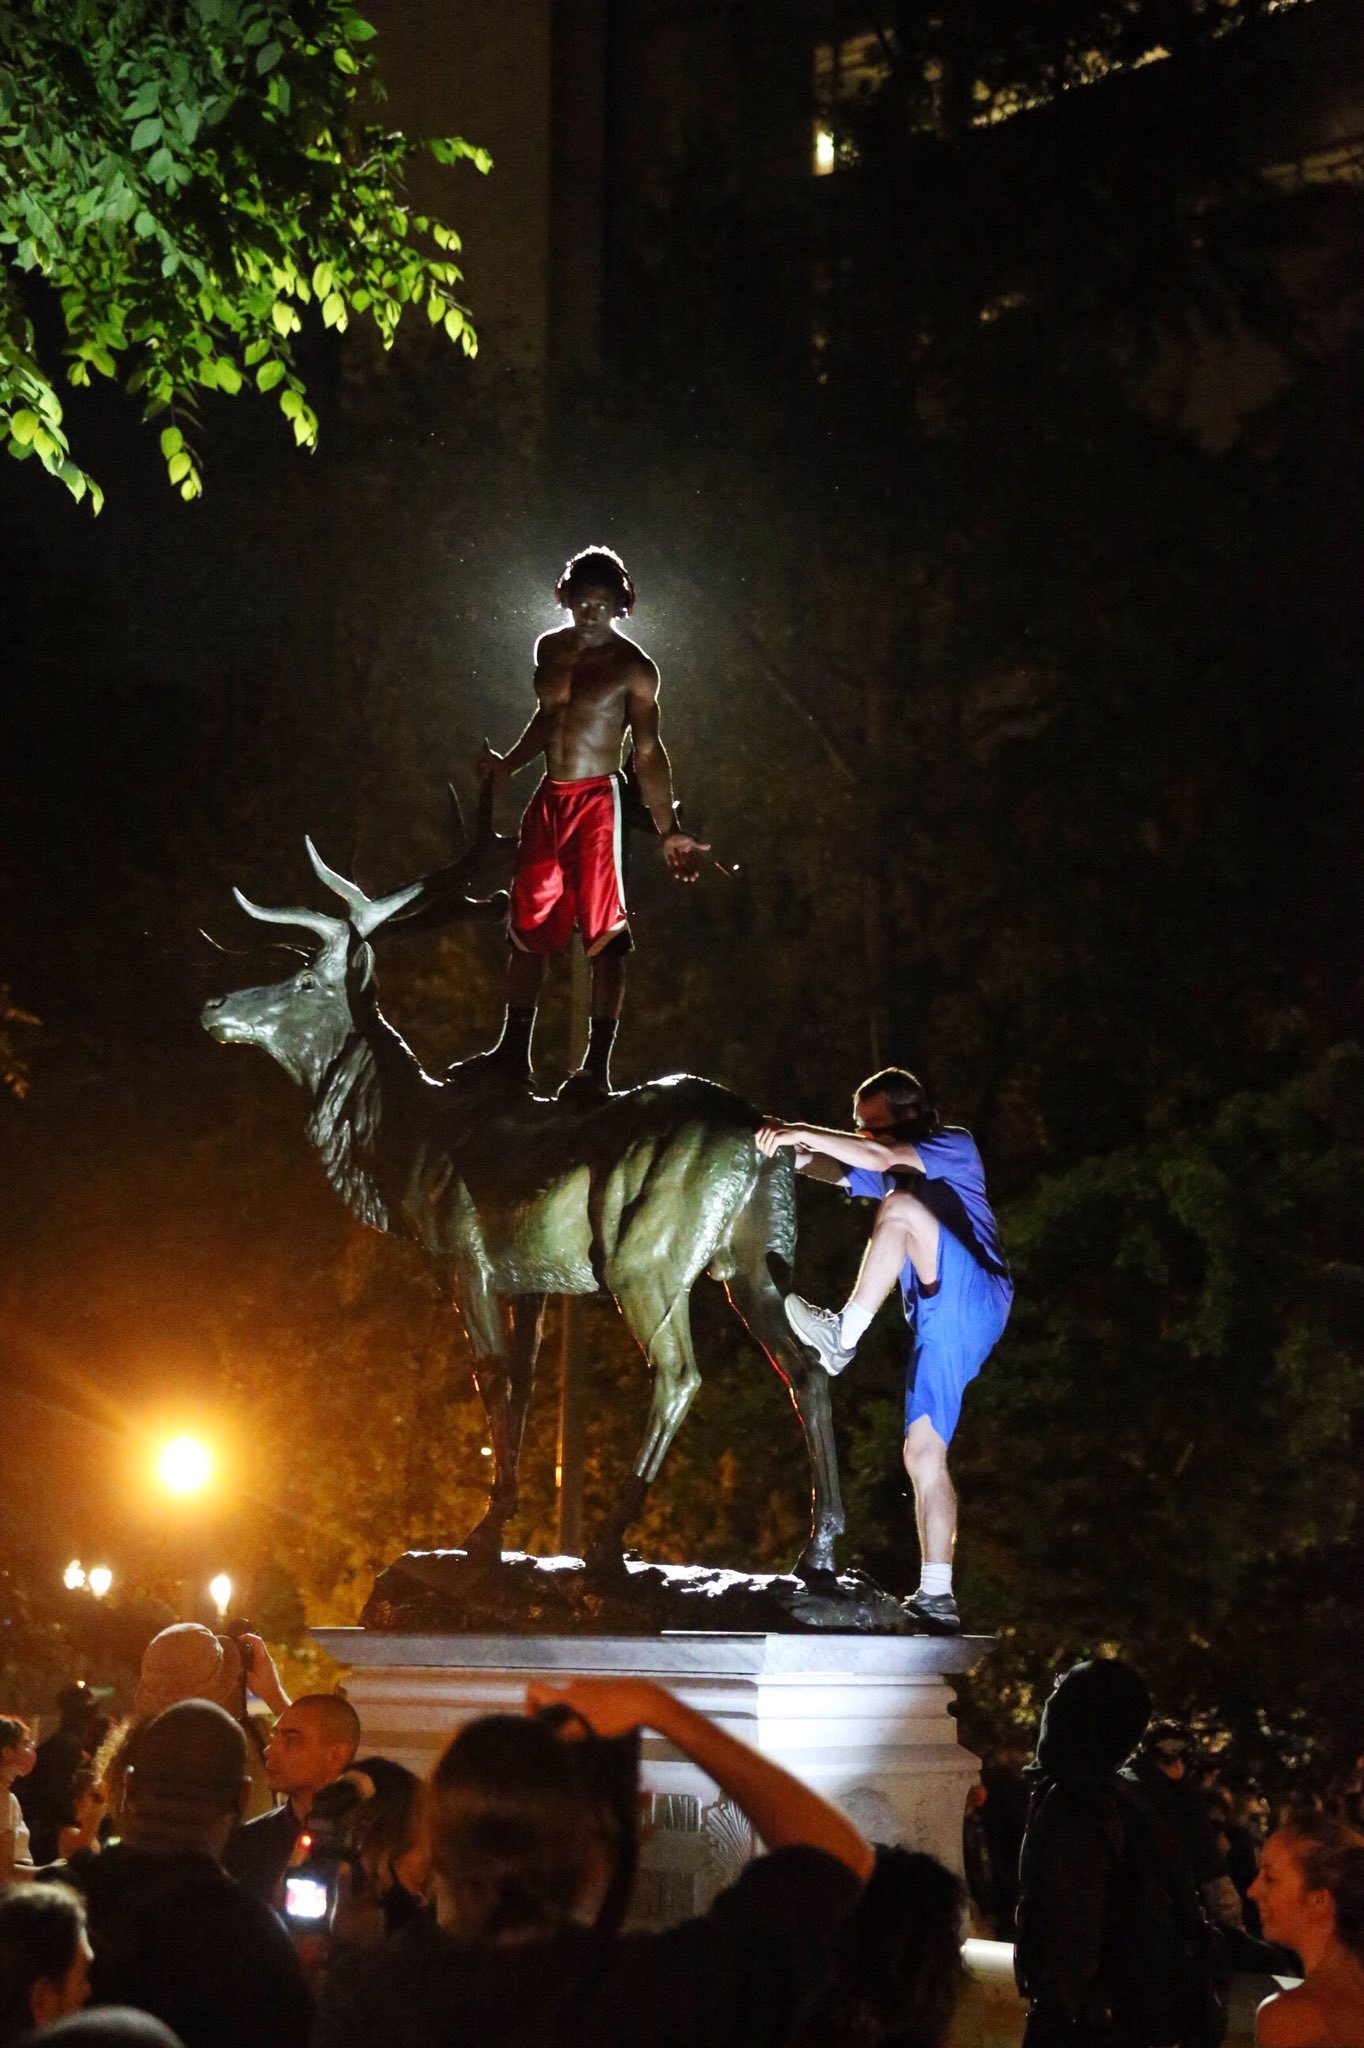 Man on elk statue reach out to other man climbing